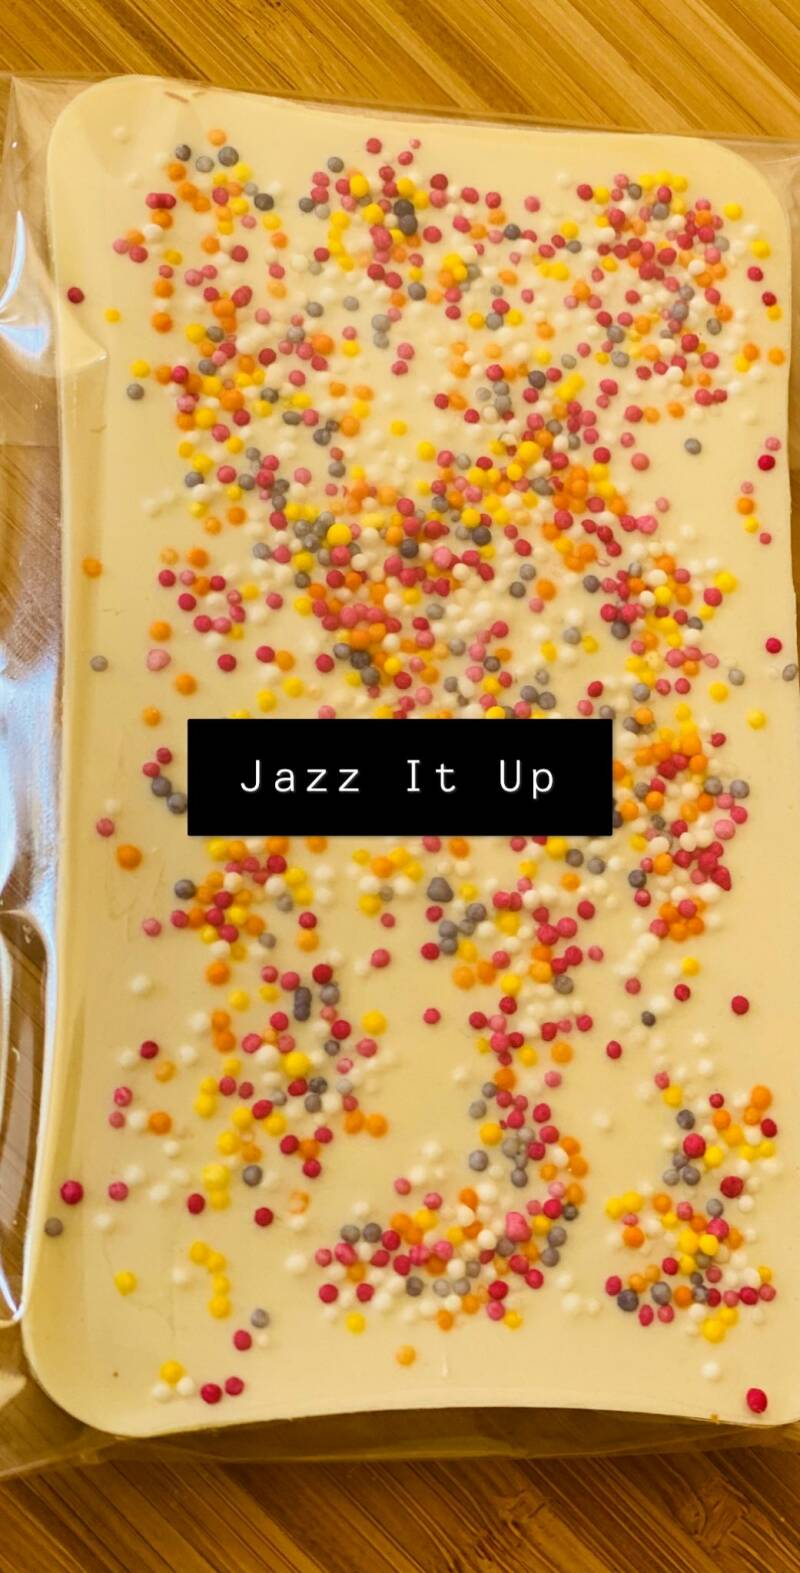 Chocolate Slab Jazz It Up